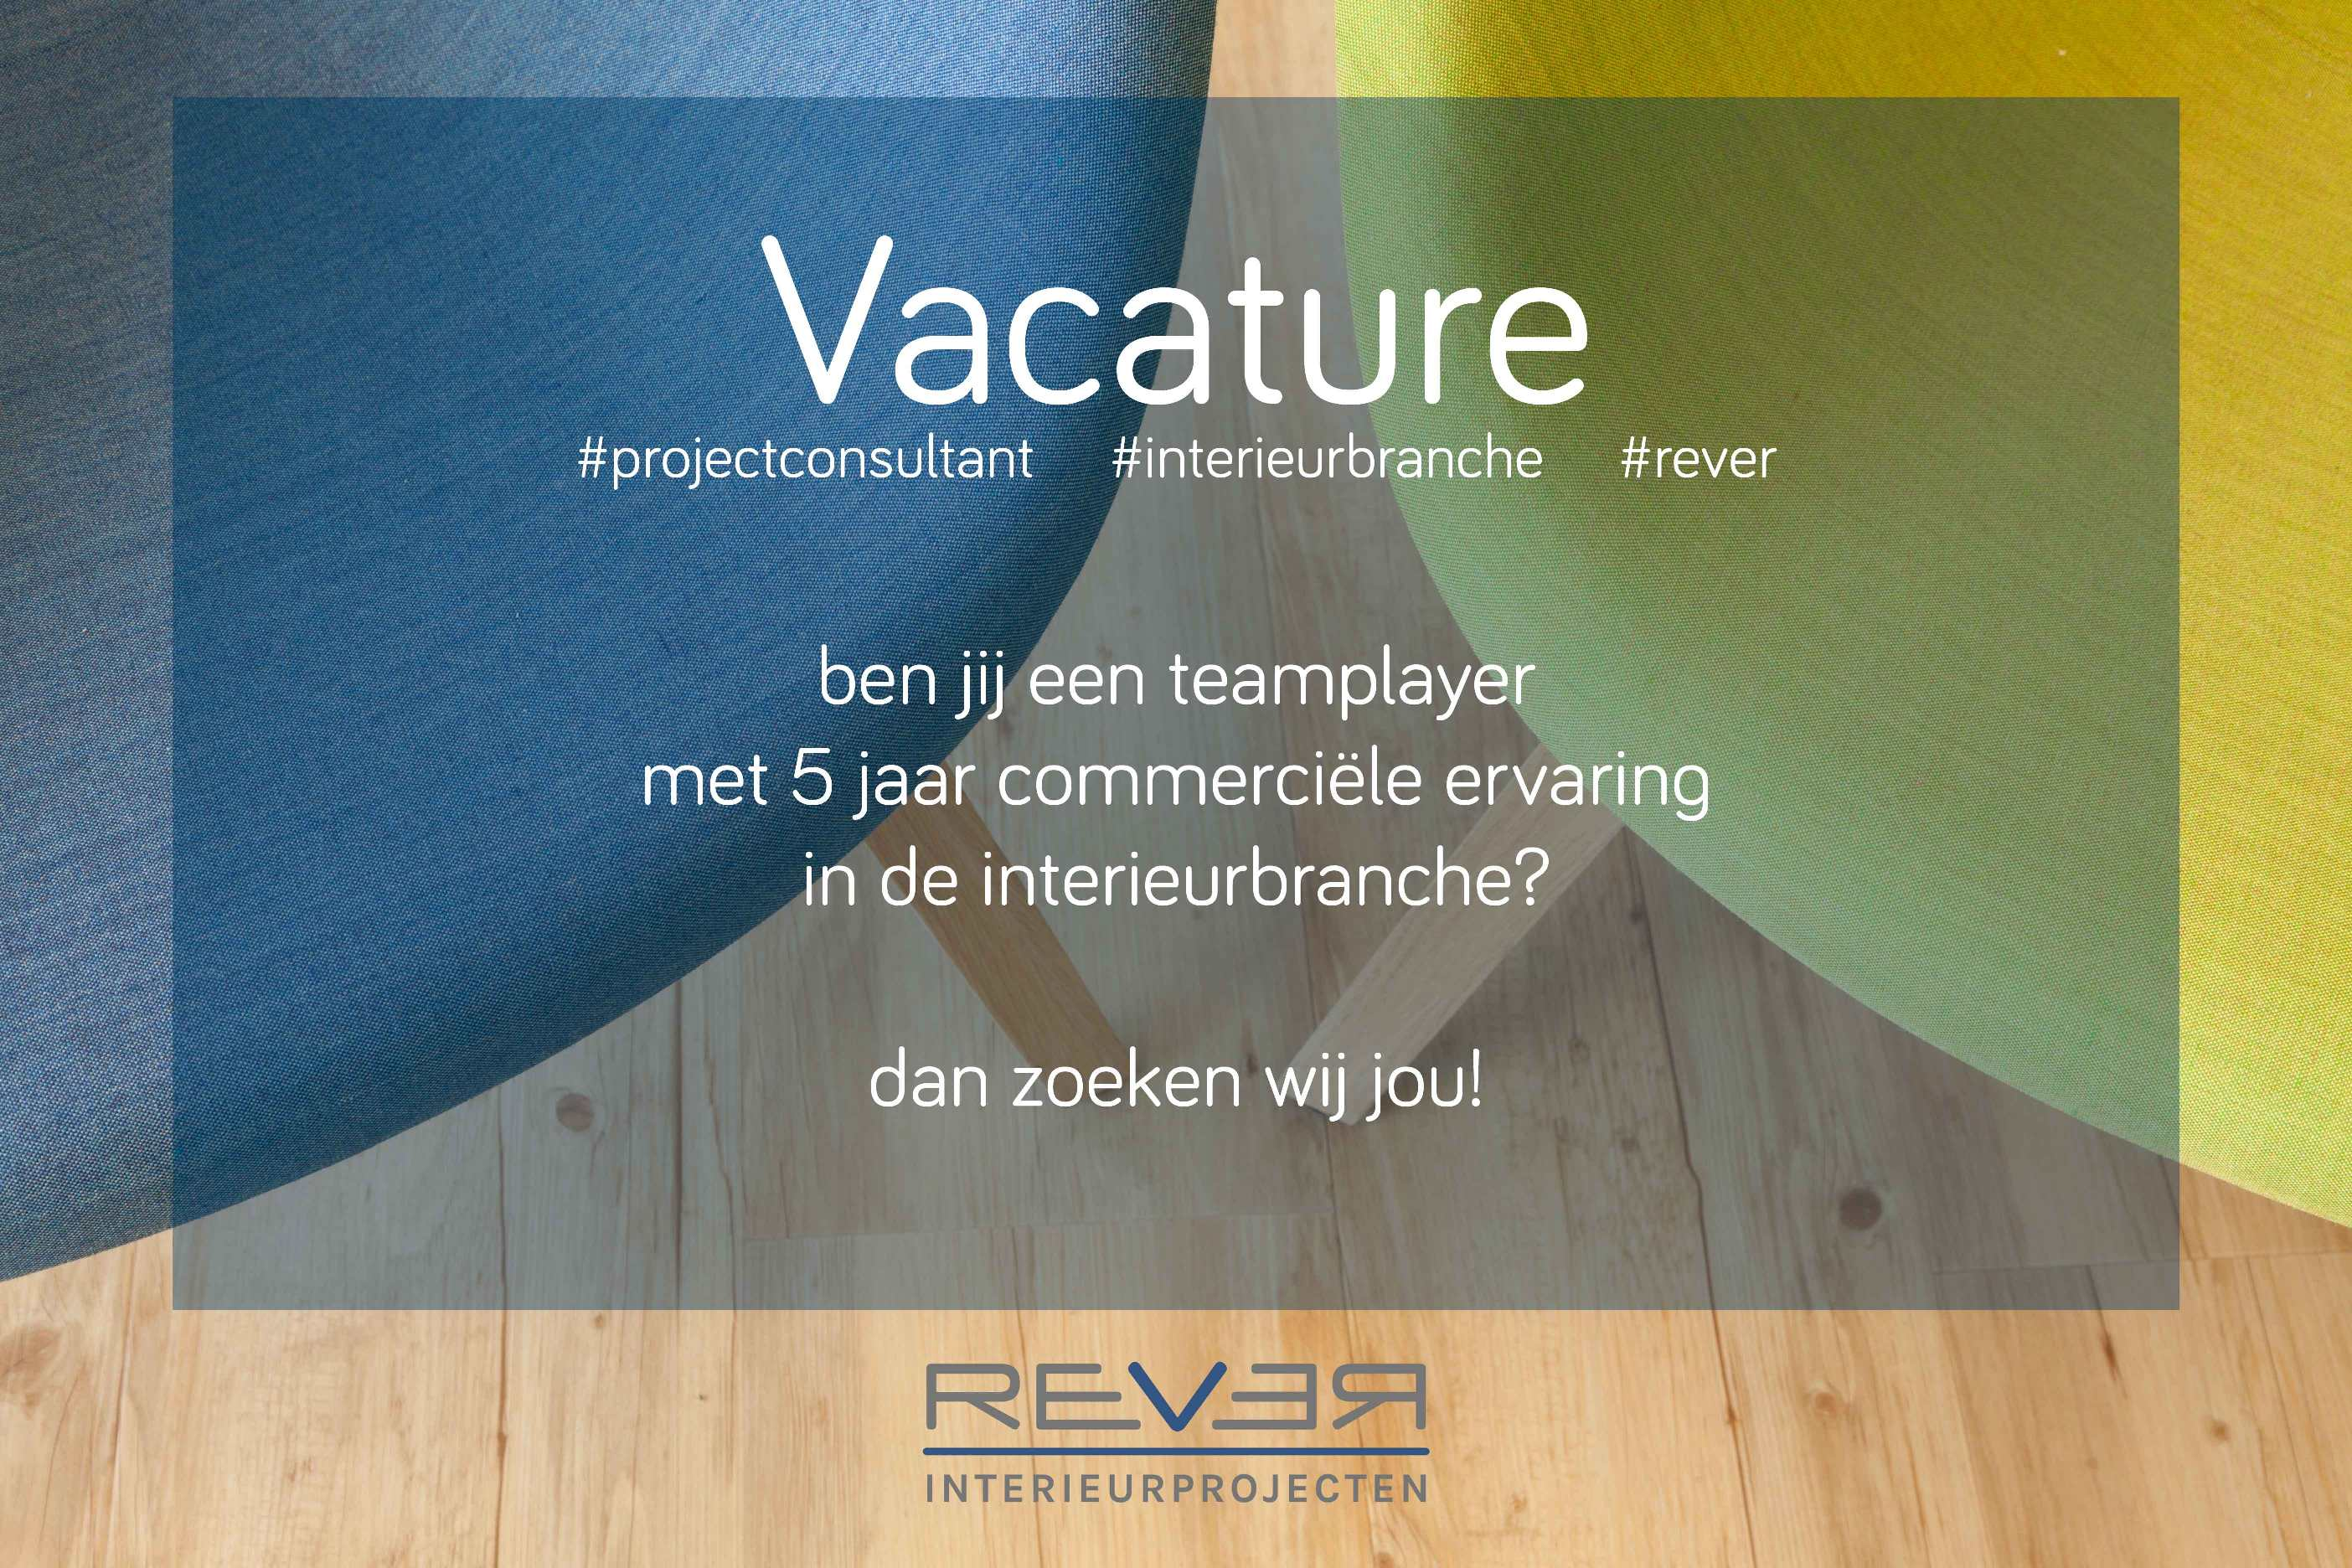 https://rever.nl/wp-content/uploads/2016/02/Site-Vacature-projectconsultant-Rever-zonderwww.jpg